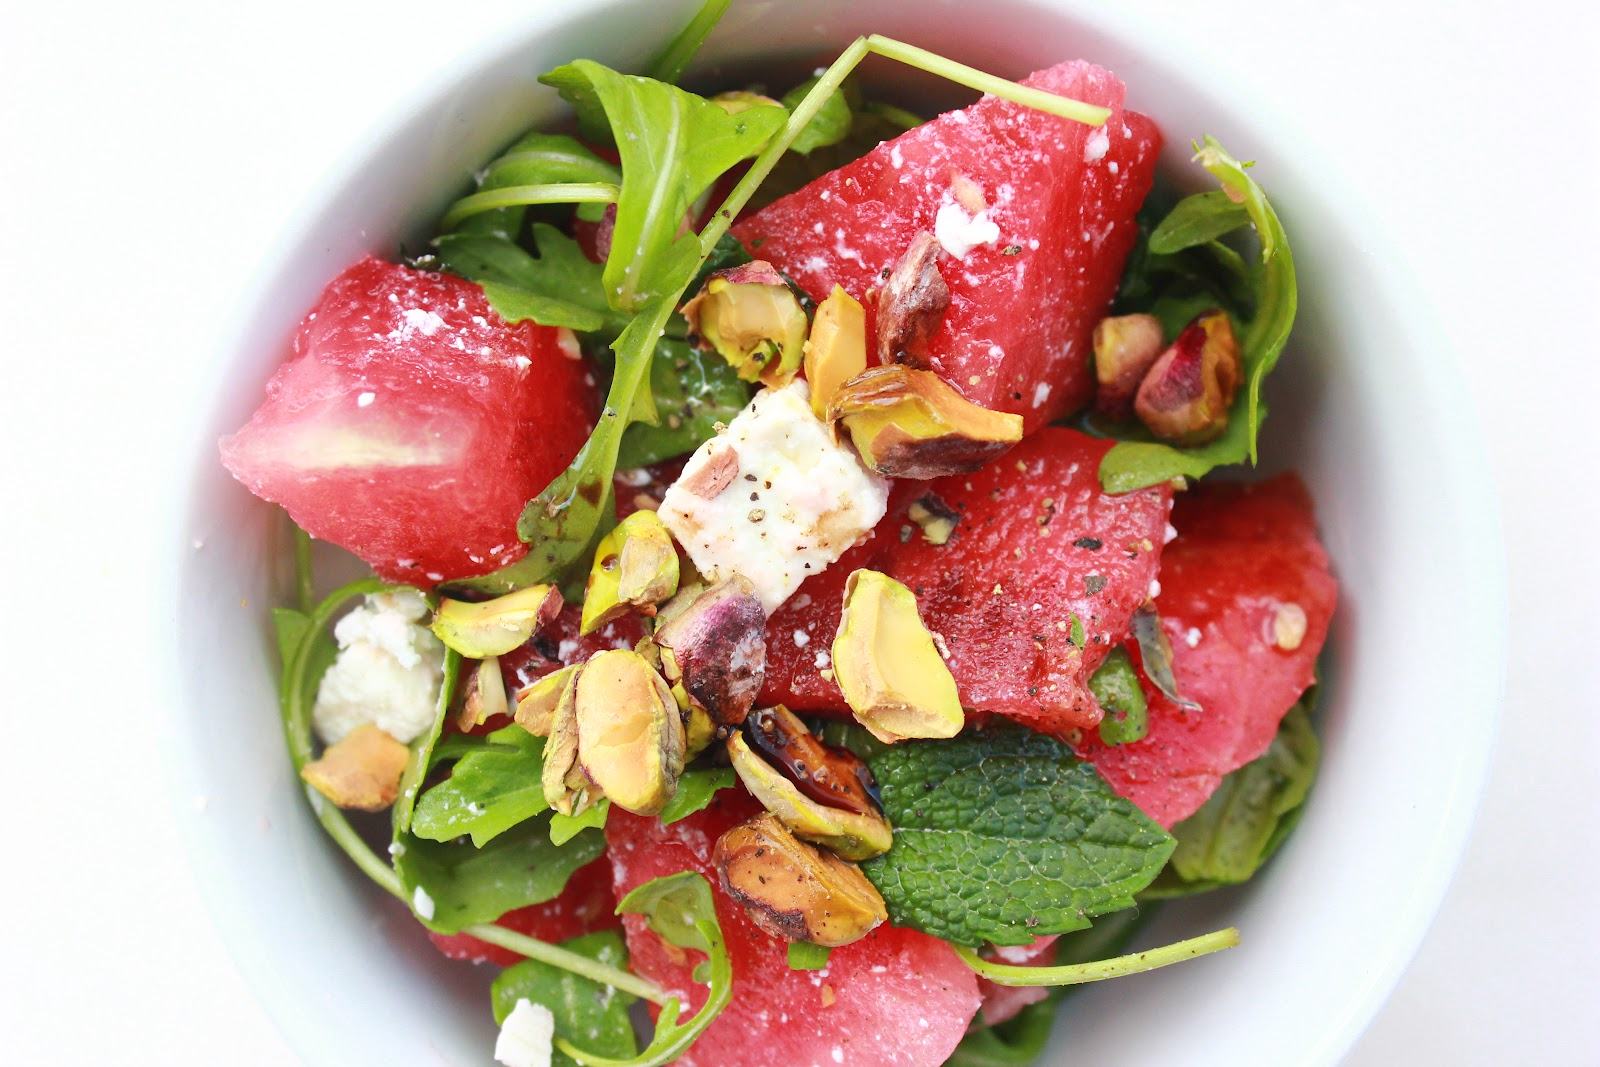 ... hearted kitchen: Watermelon salad with Feta, Basil, Mint & Pistachios